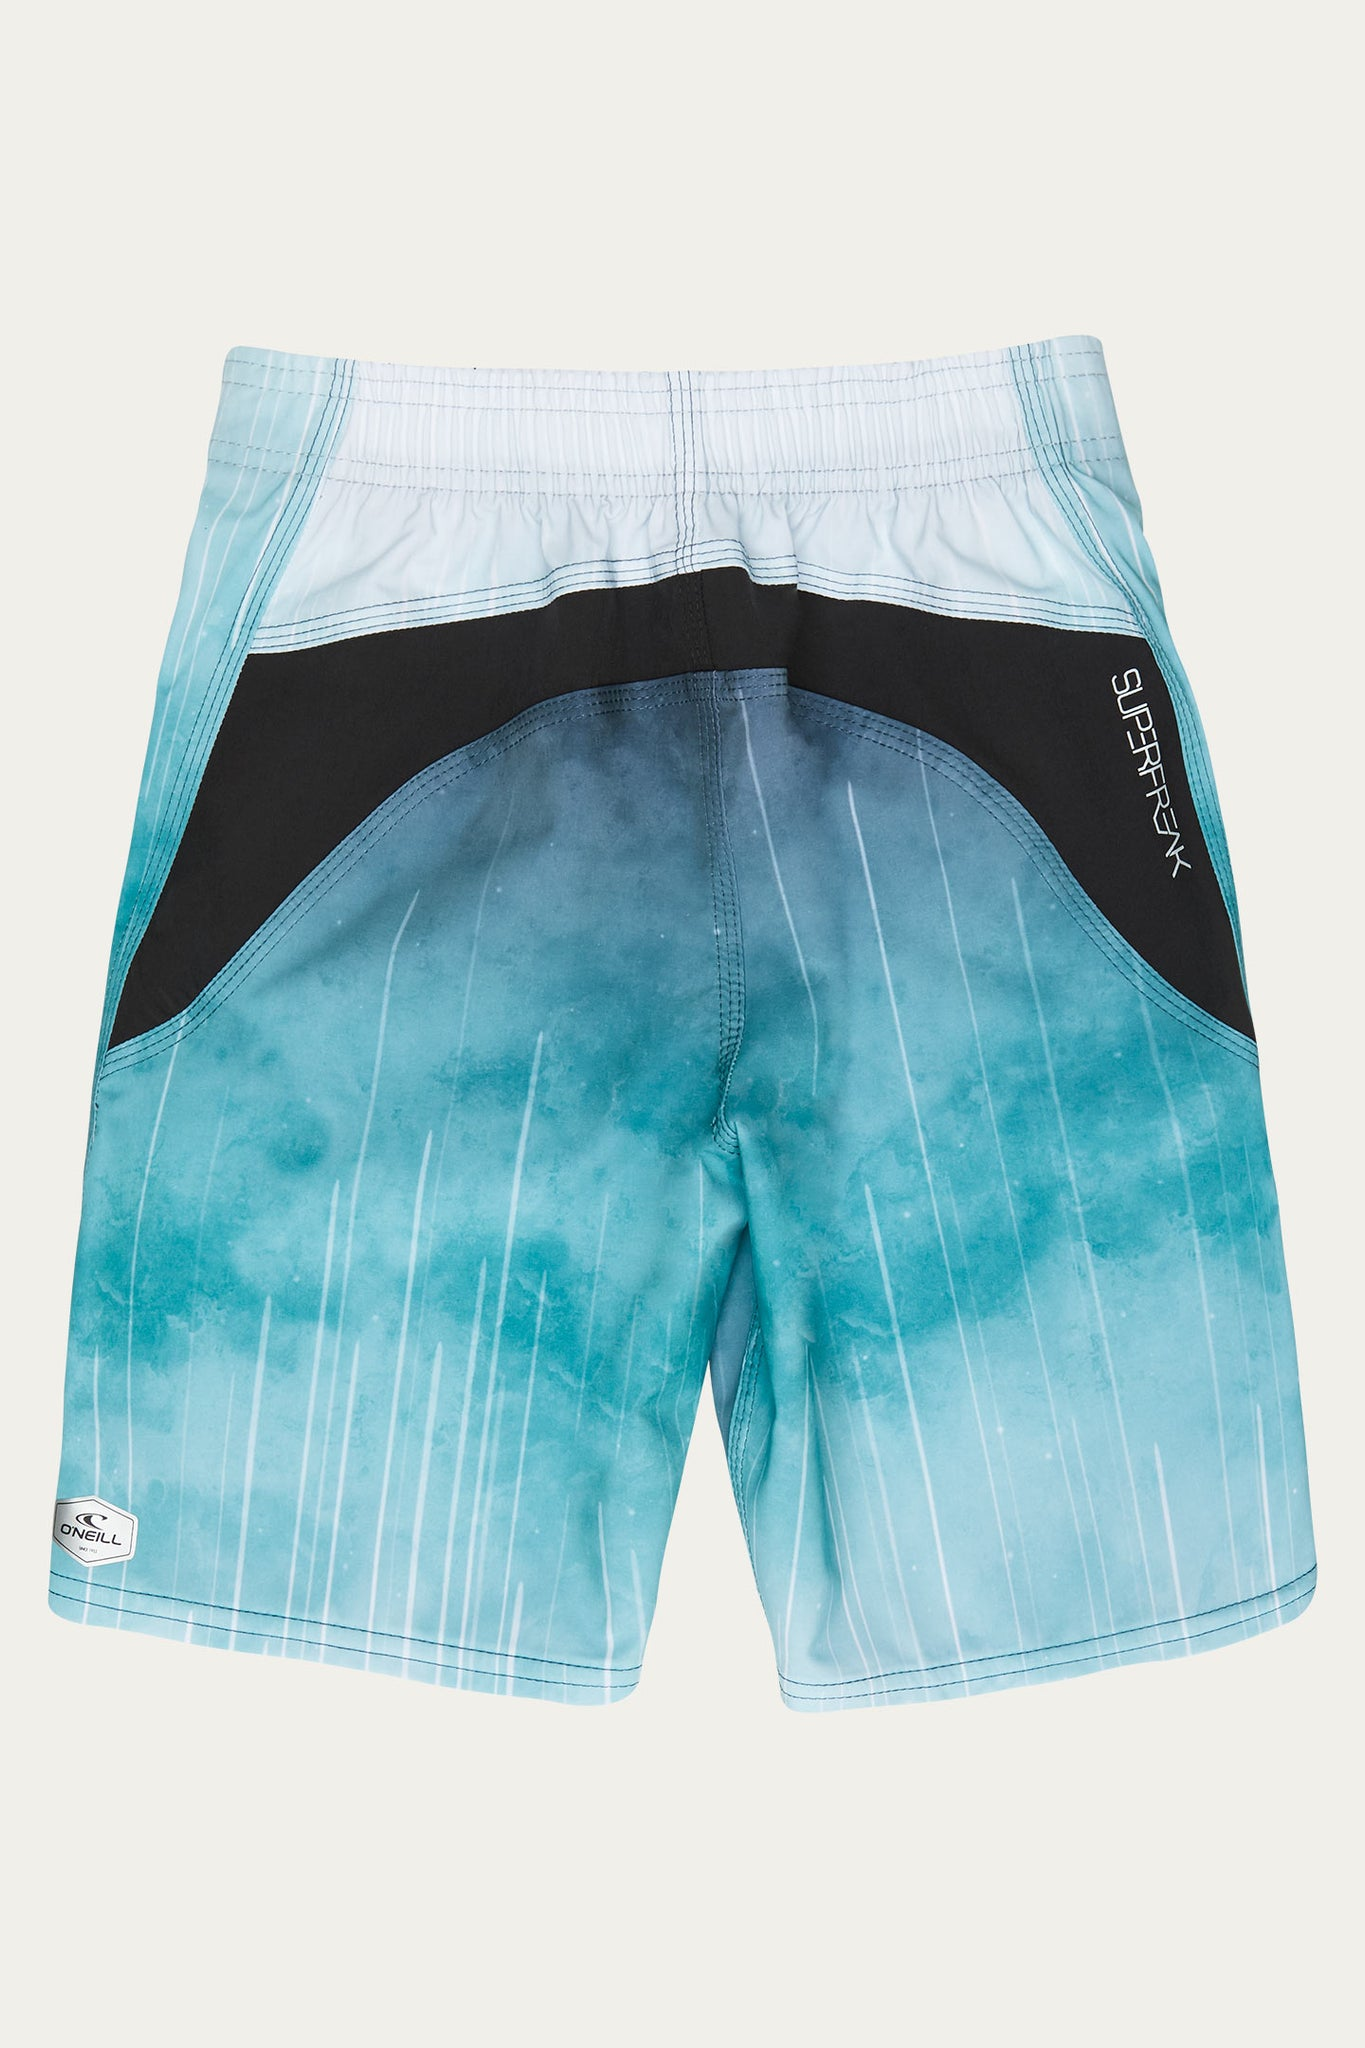 LITTLE BOYS SNEAKYFREAK CELESTIAL BOARDSHORT